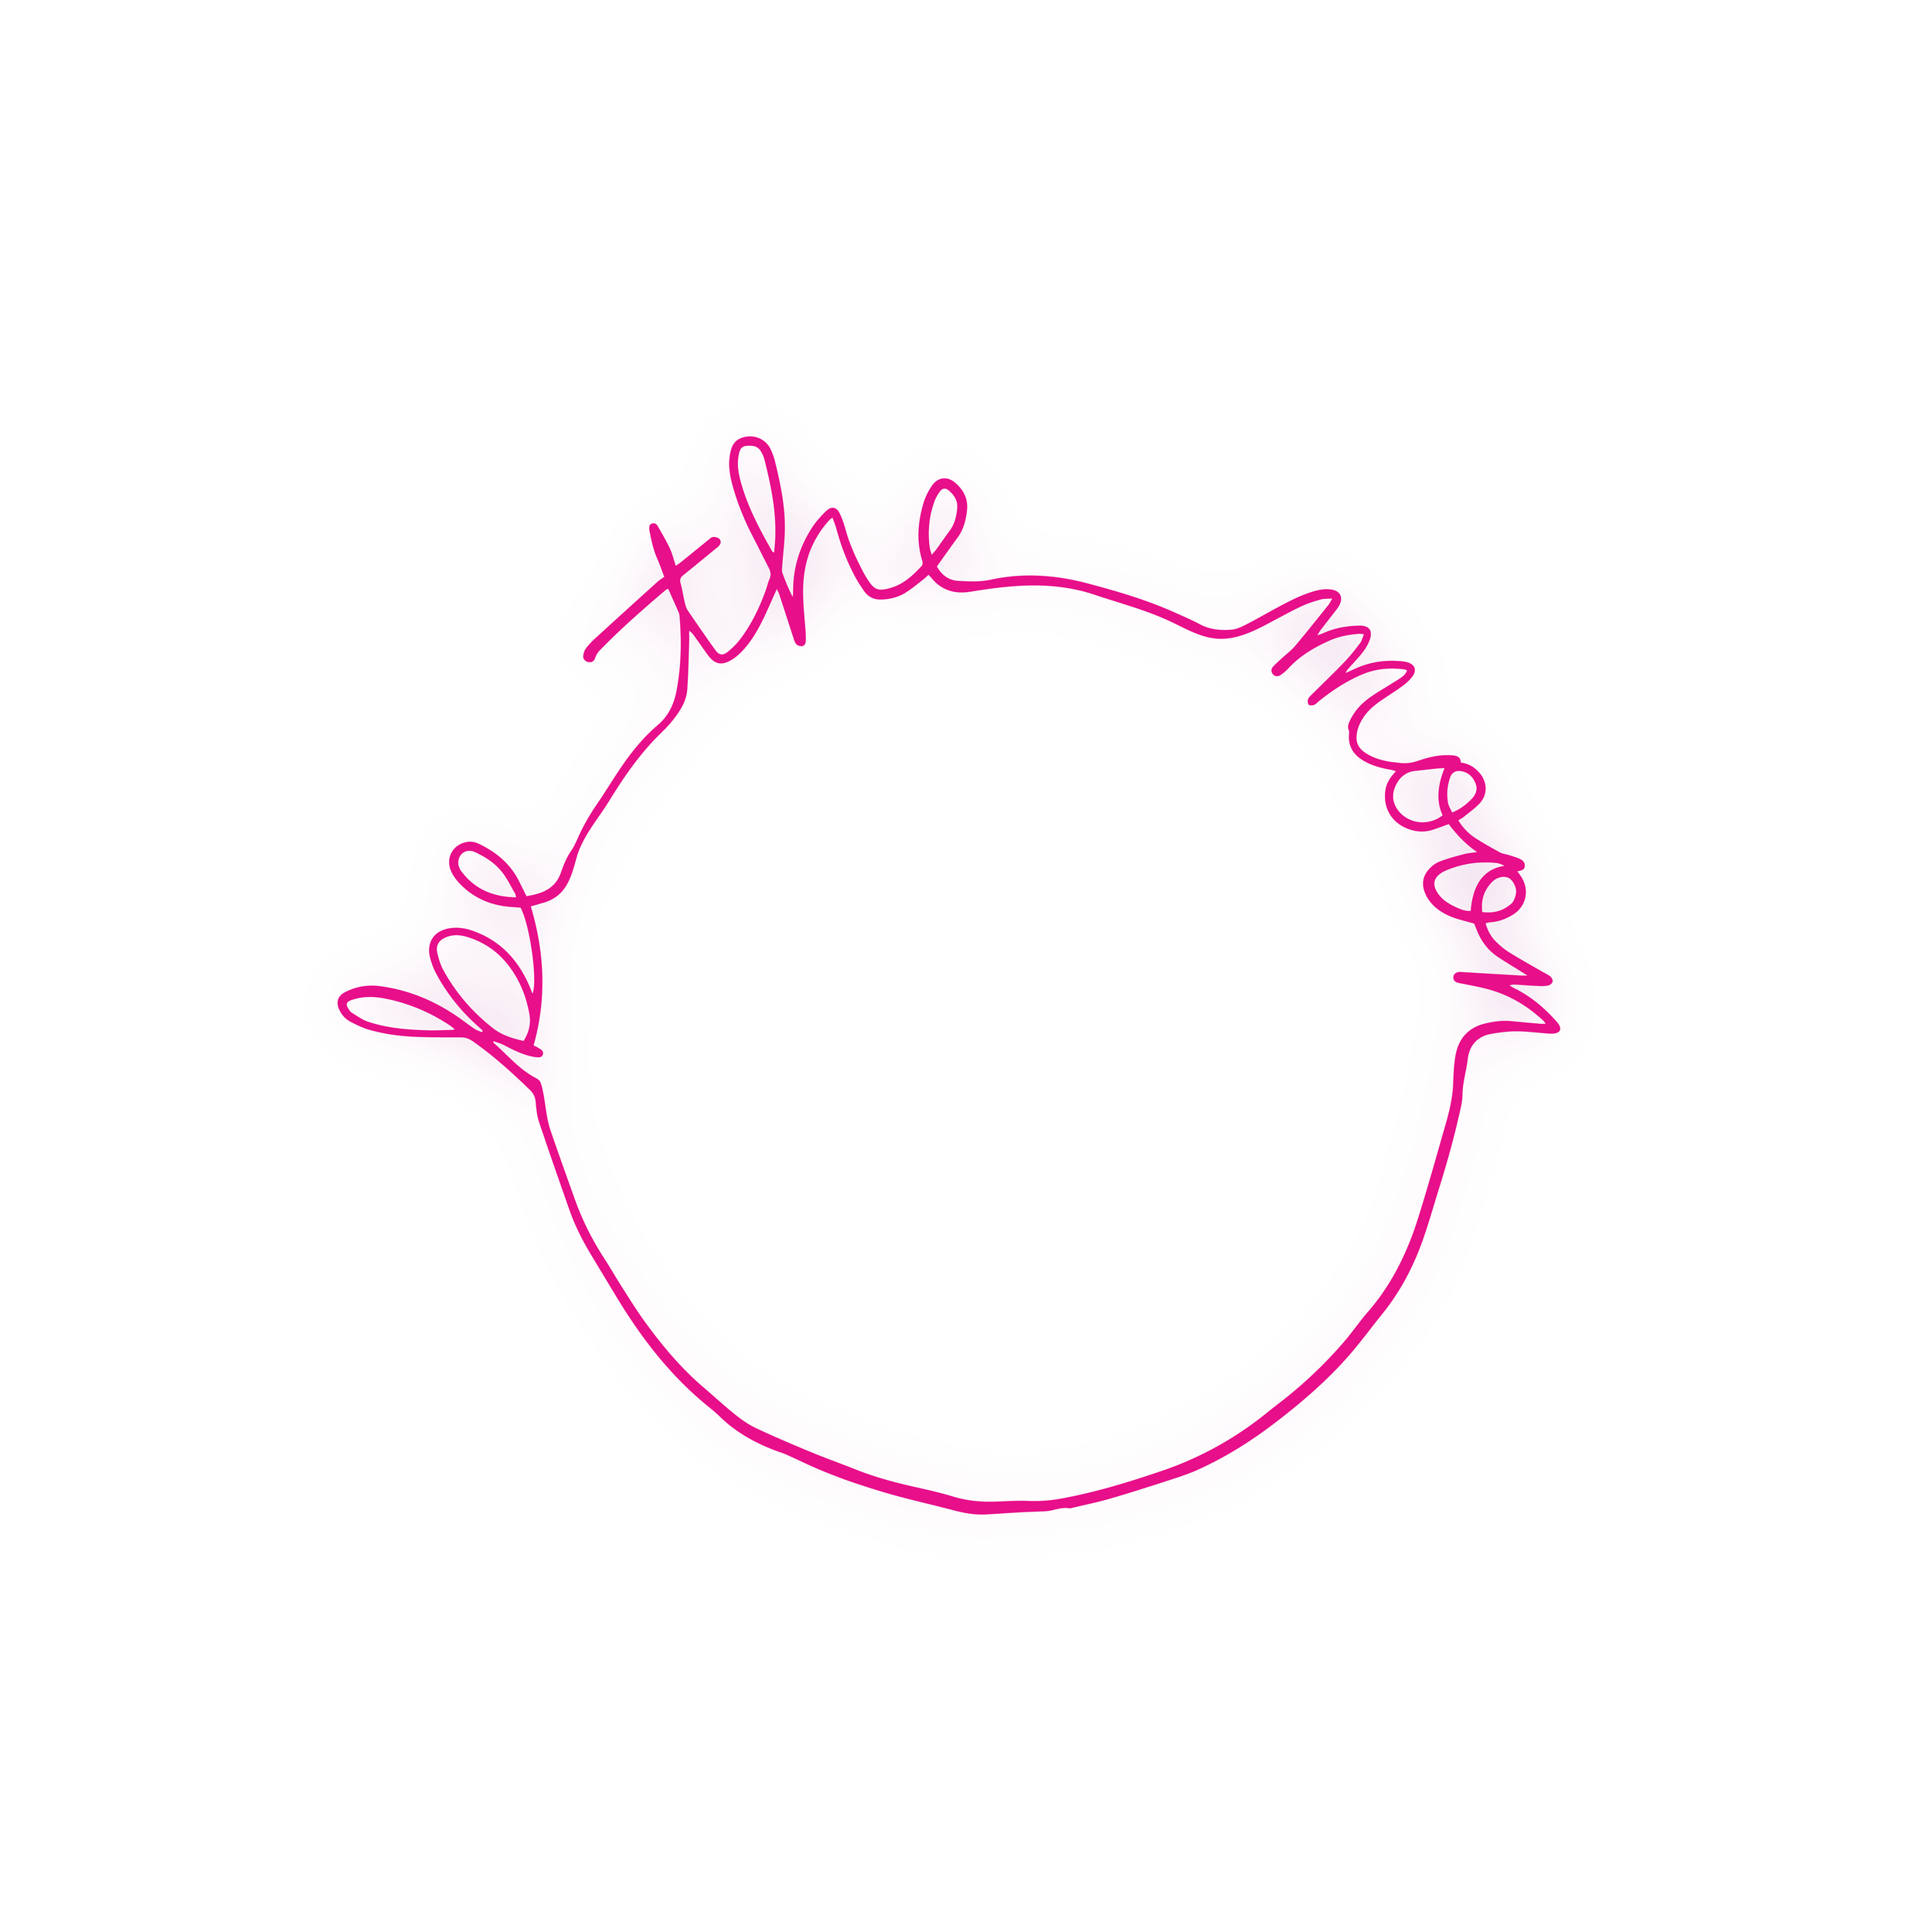 2Be the moon_letter size print.png